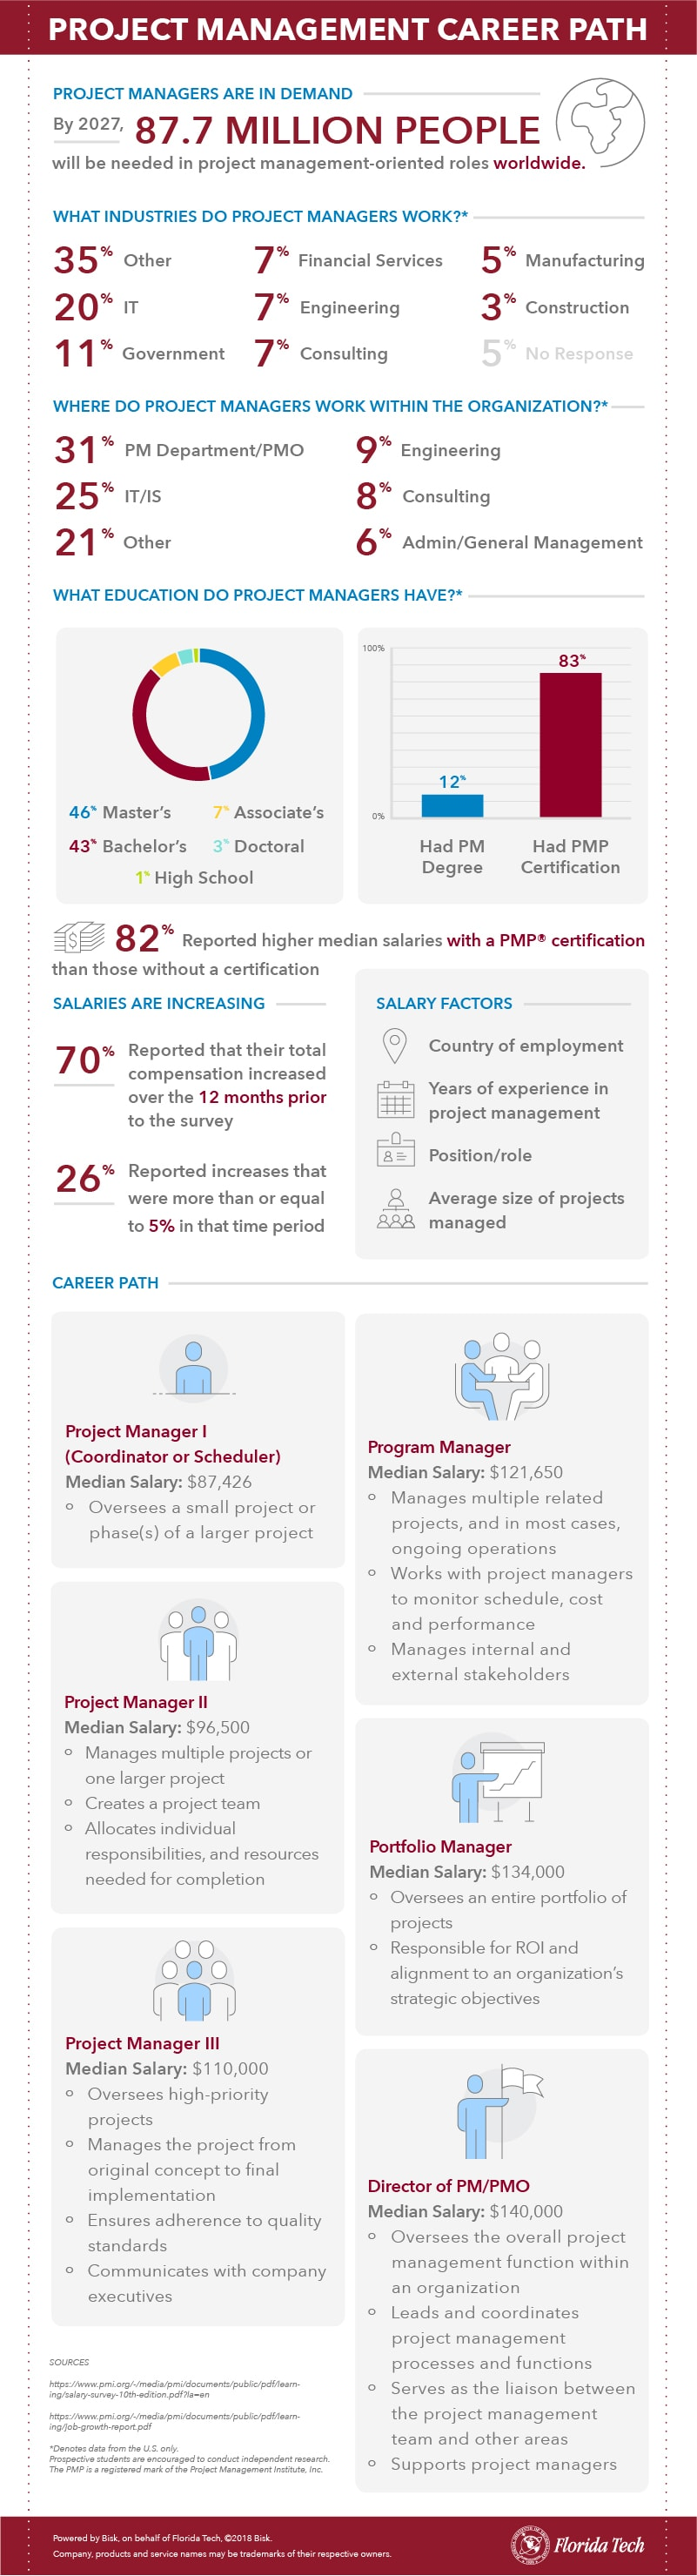 Project Management Careers Infographic